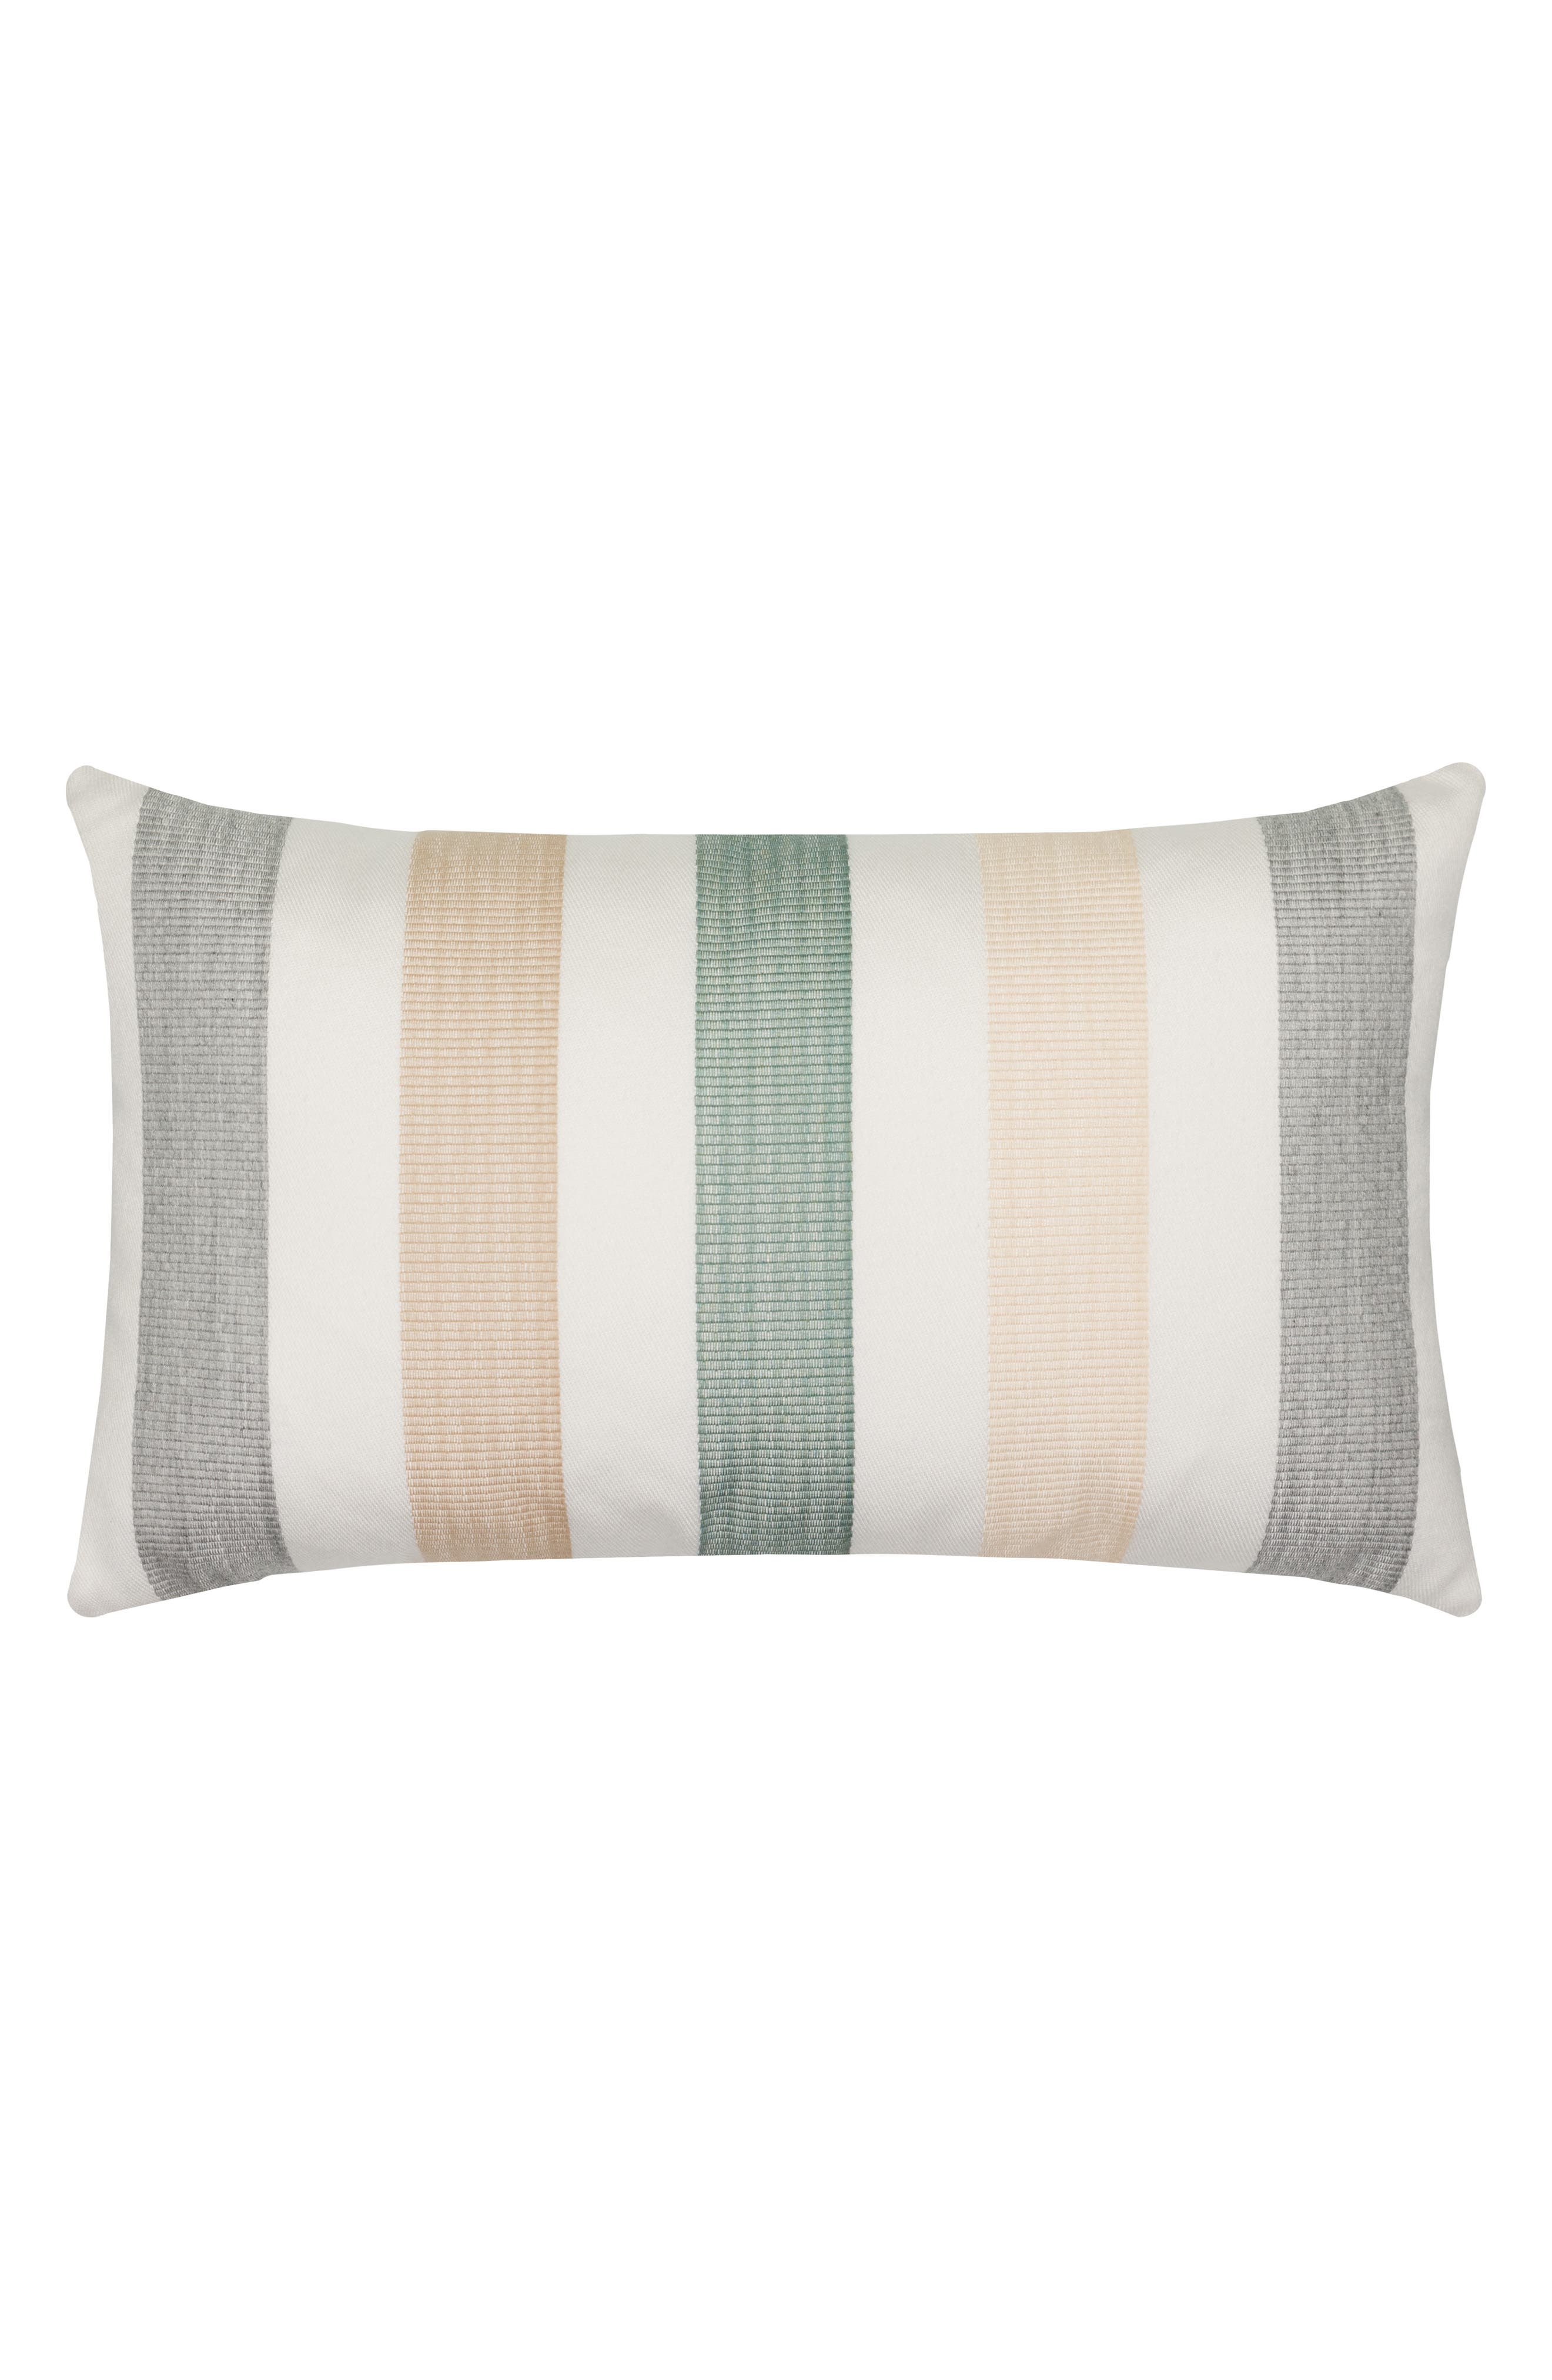 Elaine Smith Axiom Indoor Outdoor Lumbar Accent Pillow Nordstrom